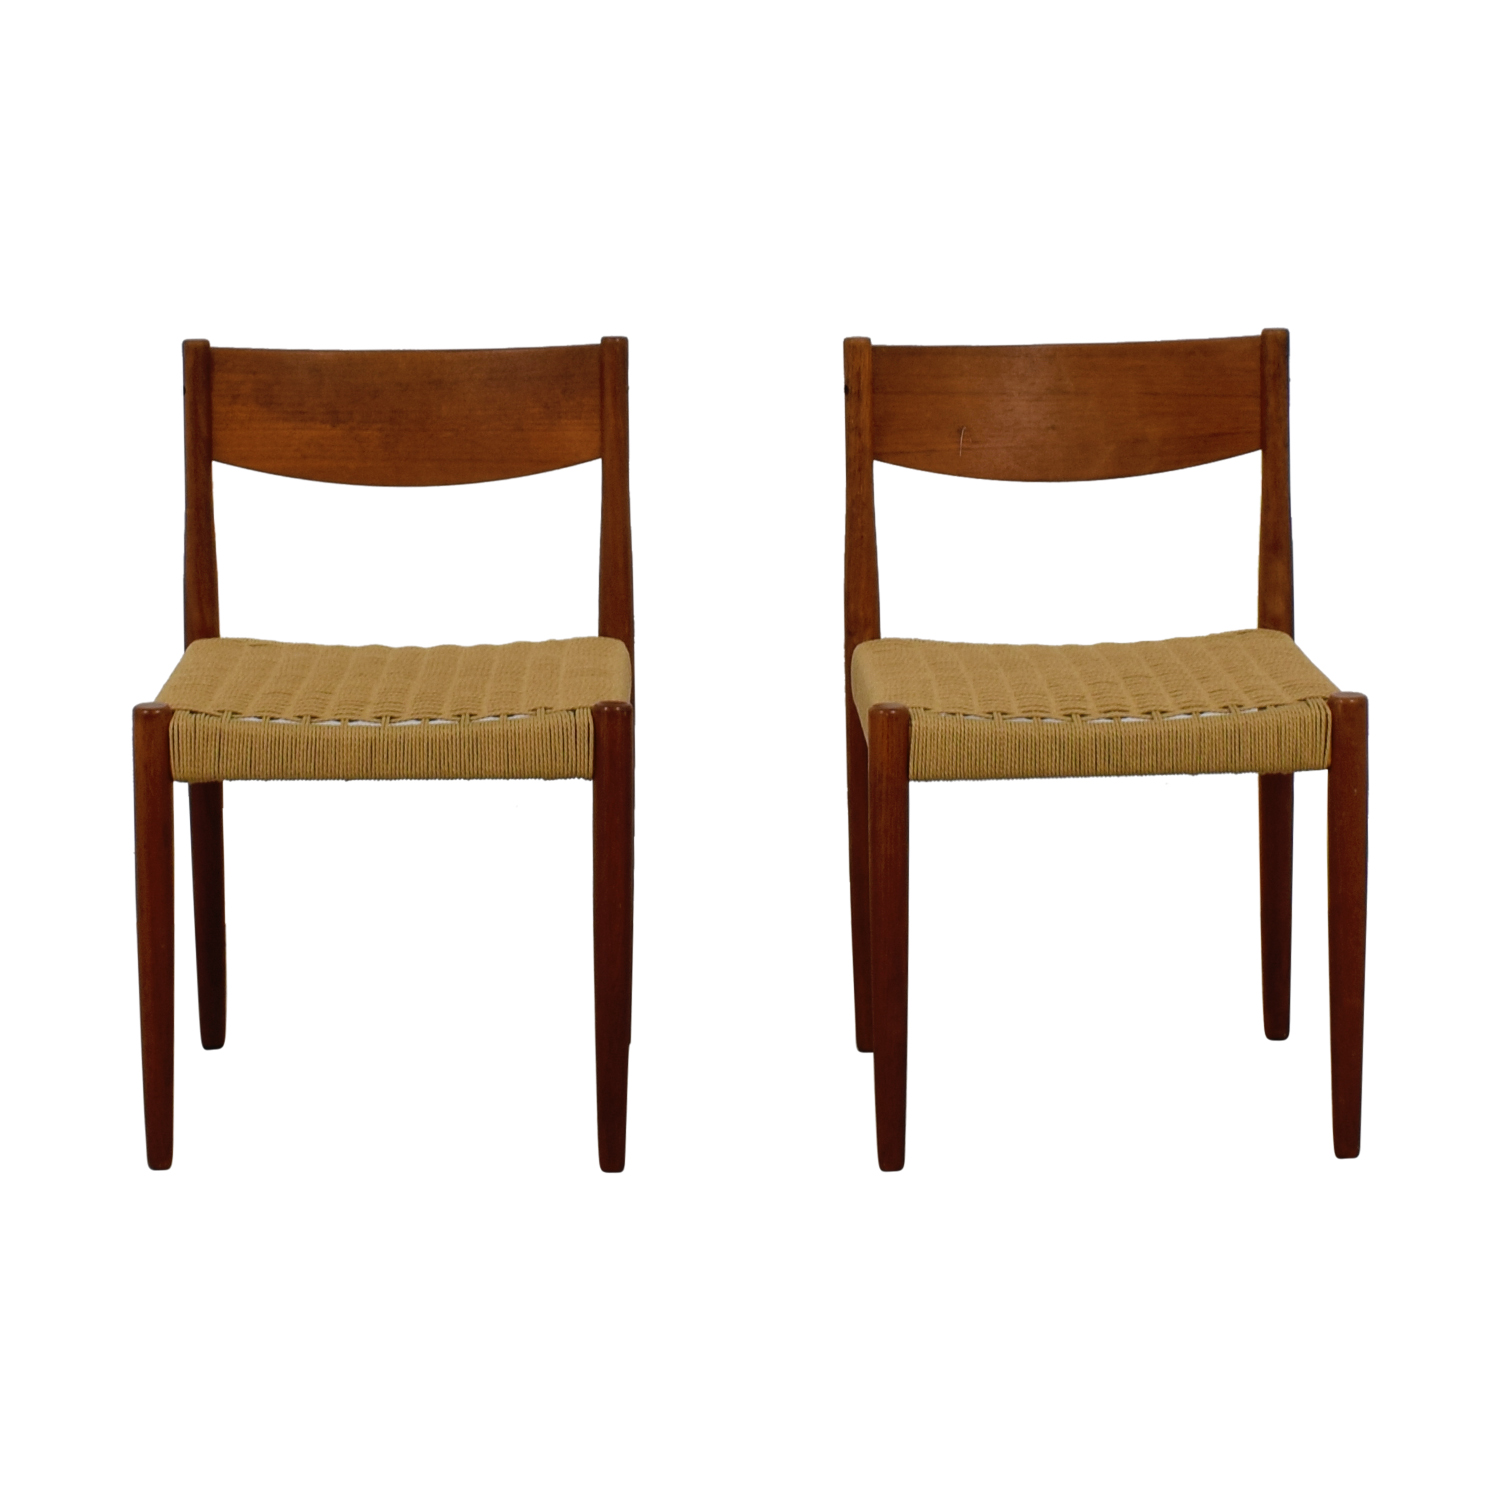 buy Vintage Wood and Sisal Woven Chairs